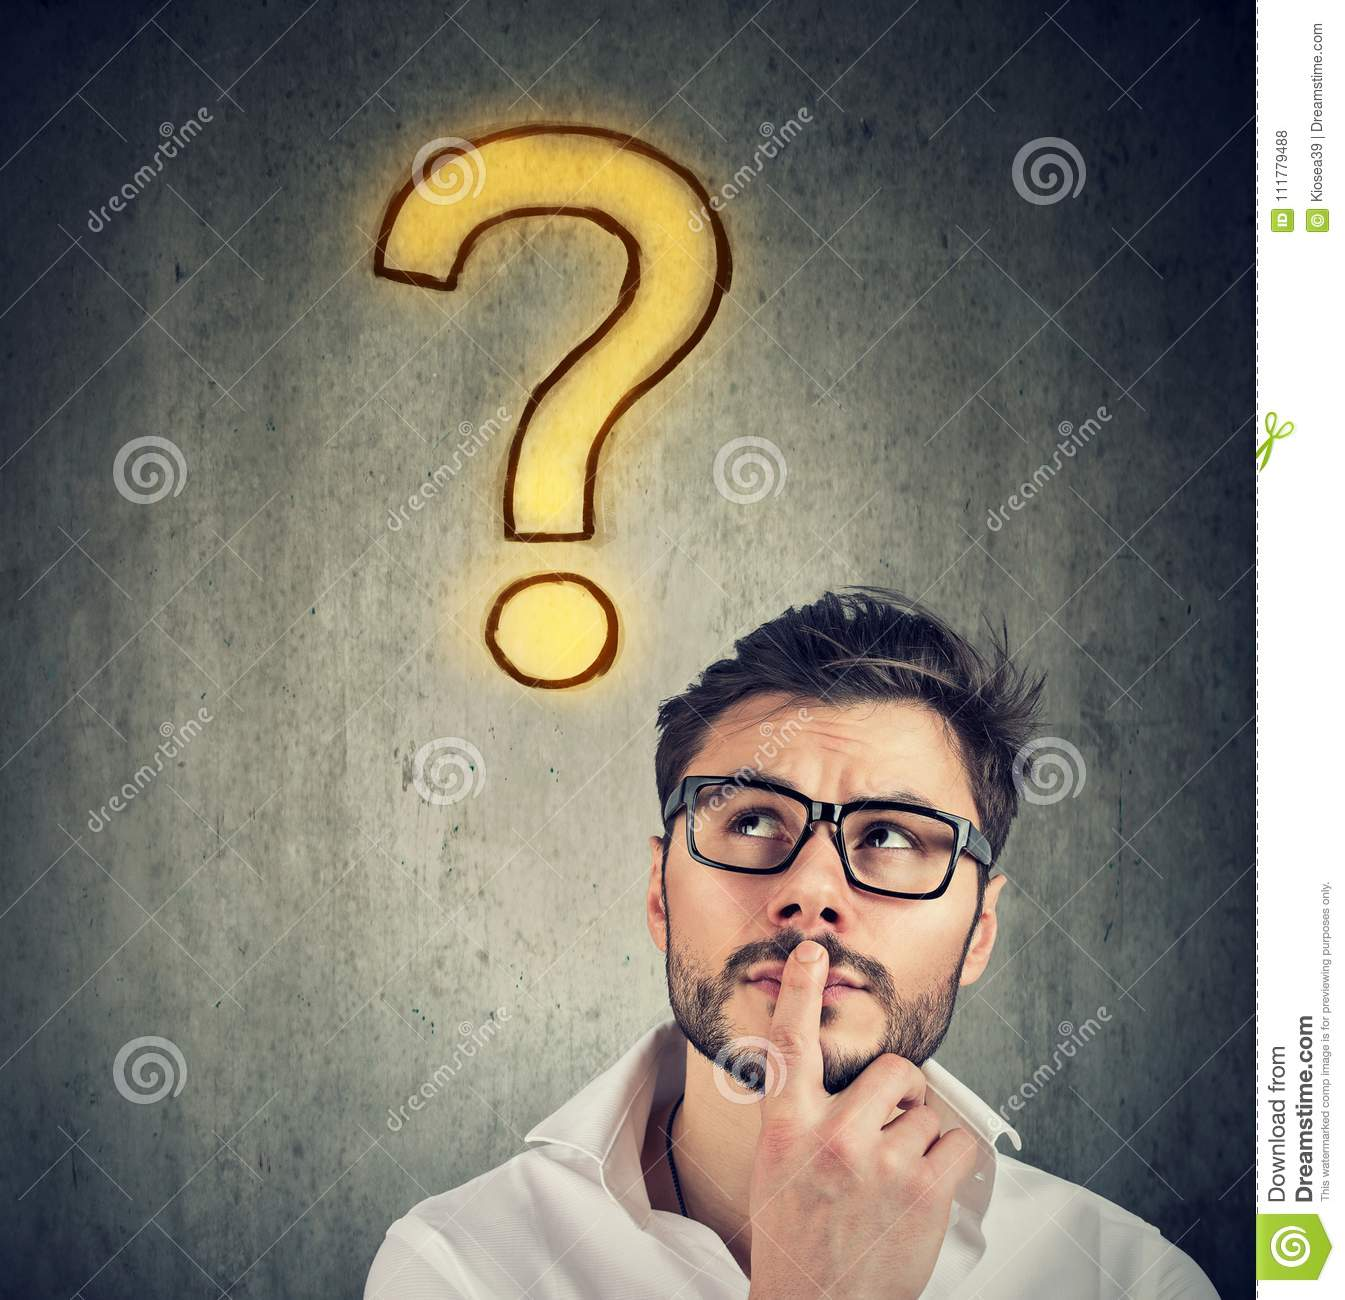 Confused handsome man has a question and no answer